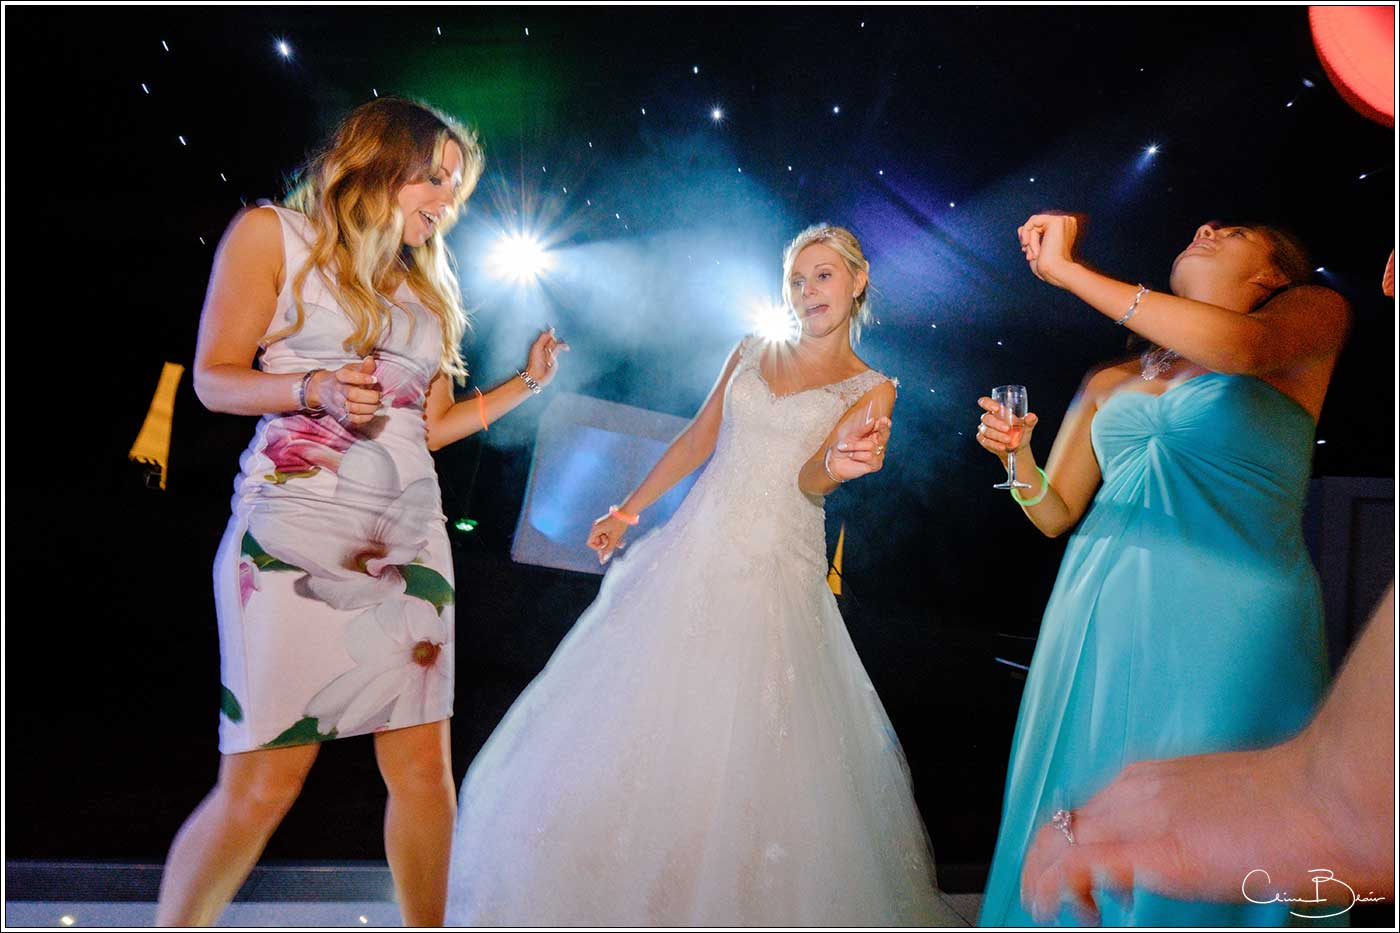 Coombe Abbey wedding photography showing bride dancing on the dance floor